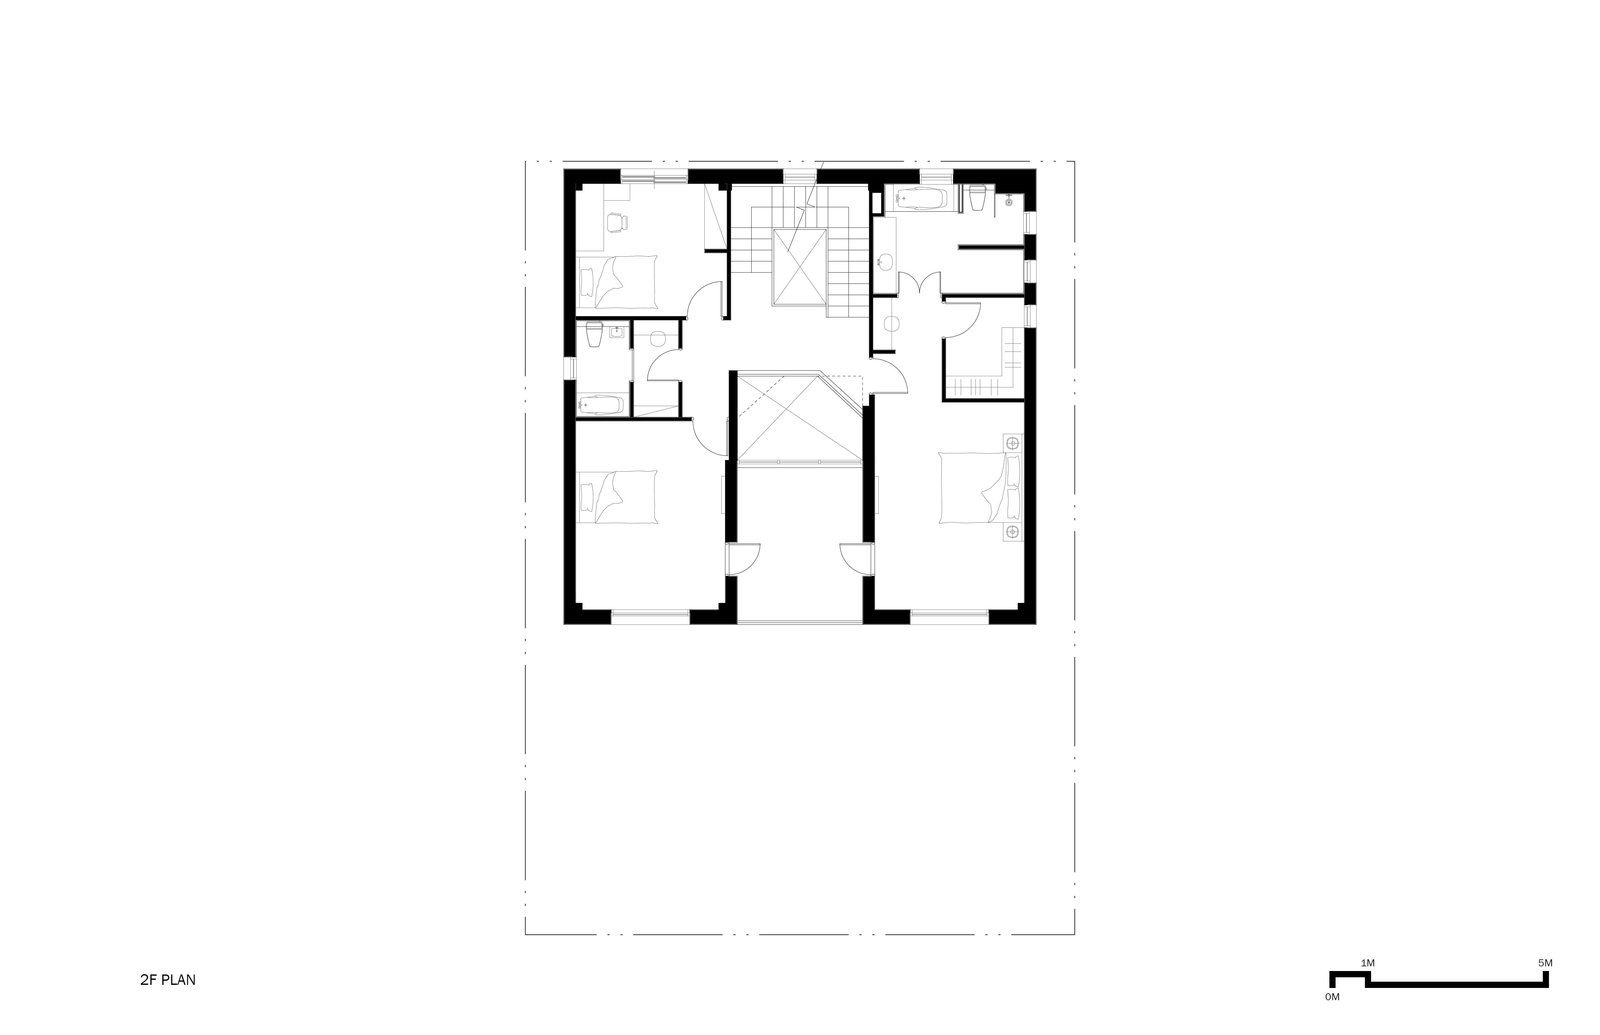 2F Plan  A House by Chang Kyu Lee